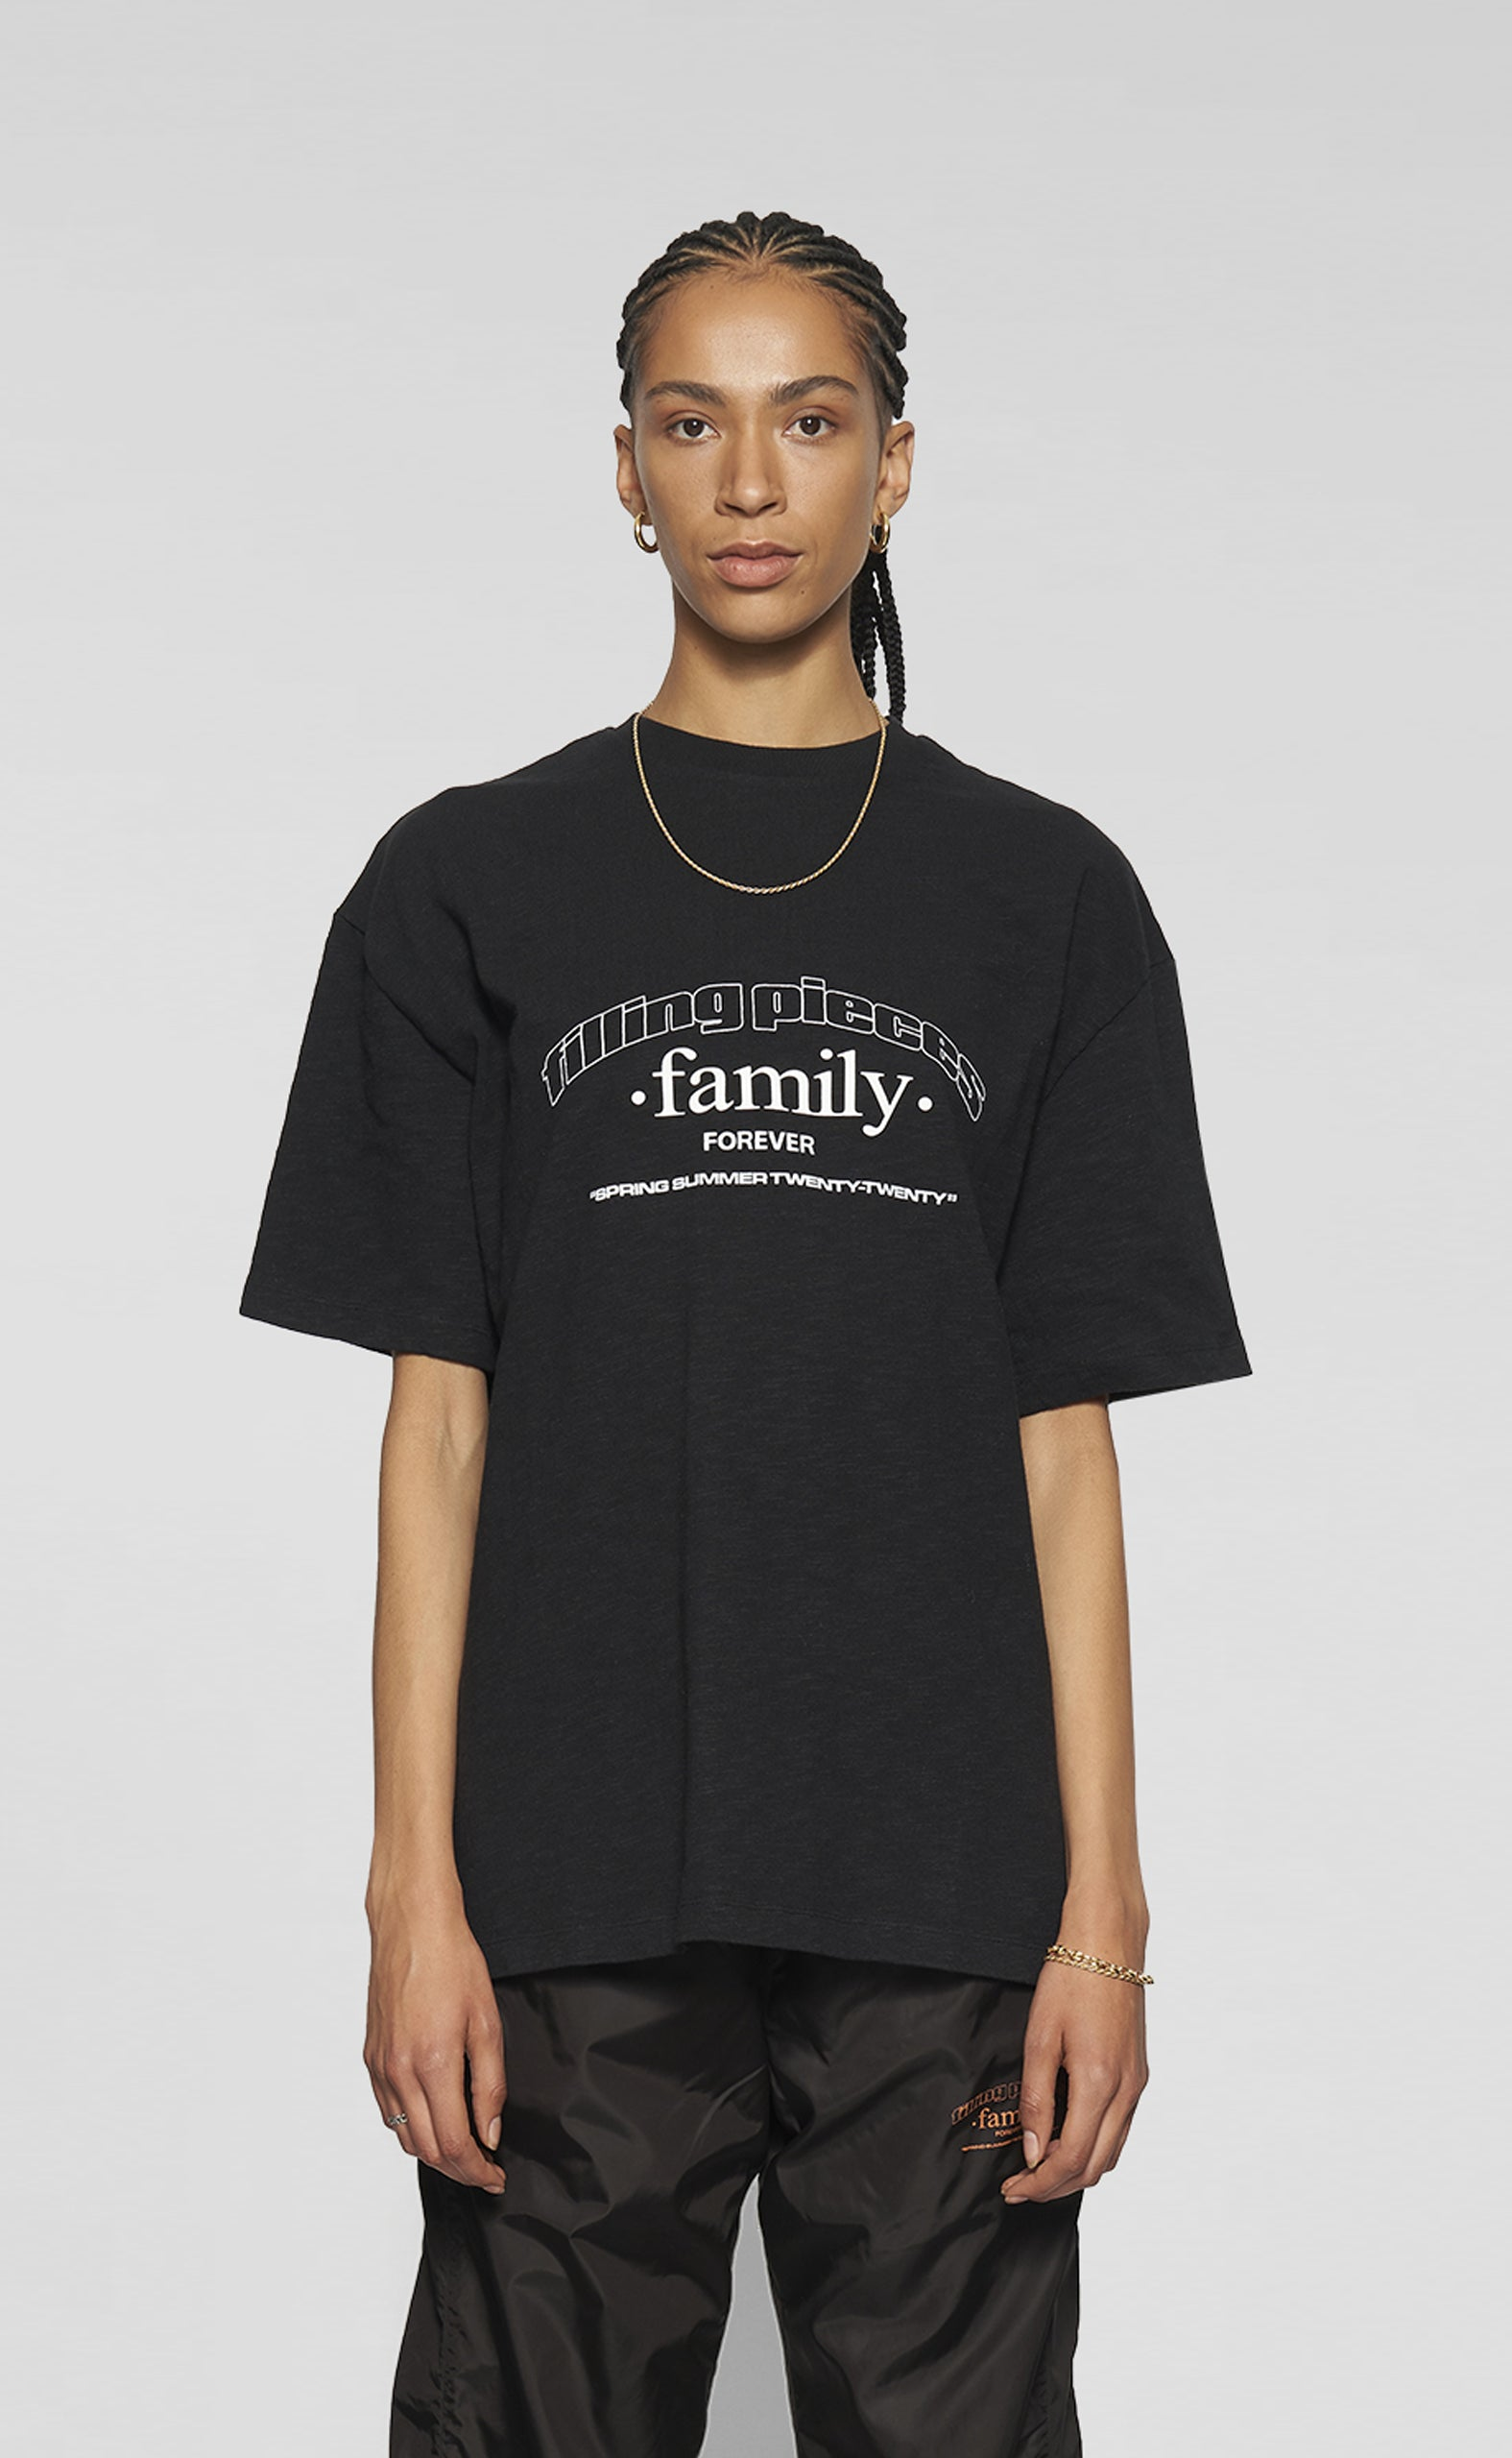 Graphic Tee FP Family Black - women